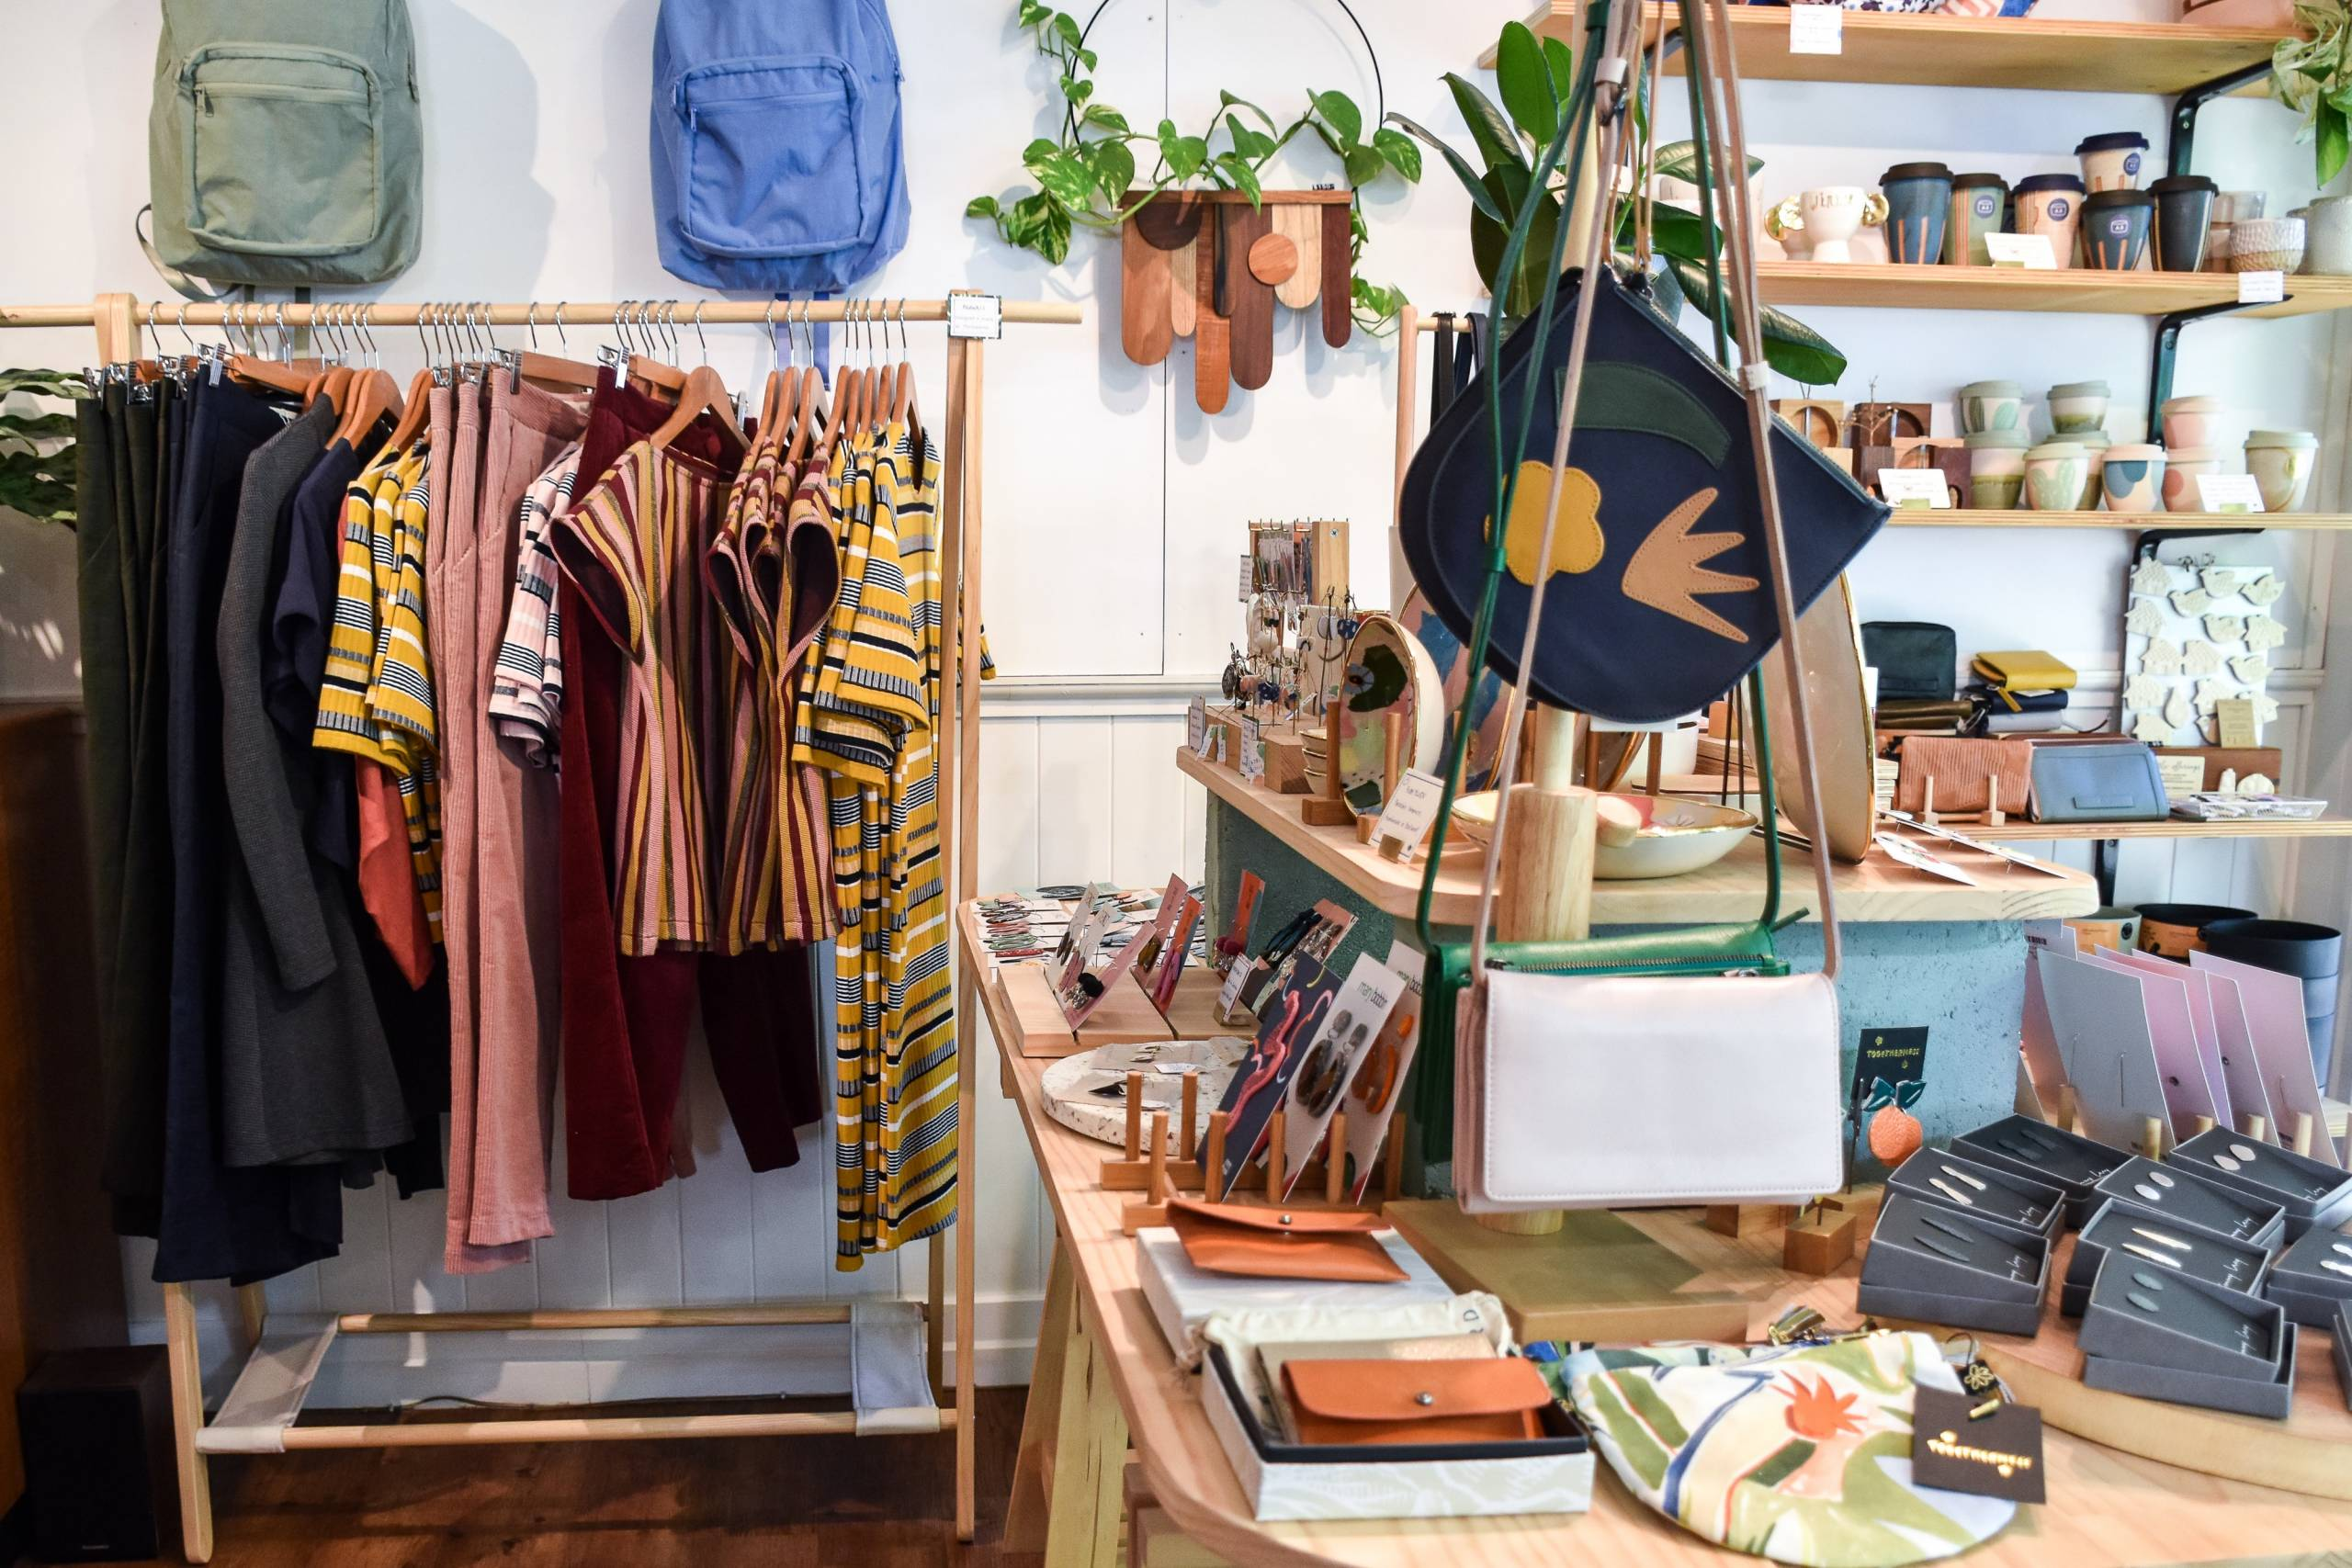 10 Sustainable Shoes, Bags & Clothing Items We've Added To Our Most Wanted List For Spring (SHOP IT!)